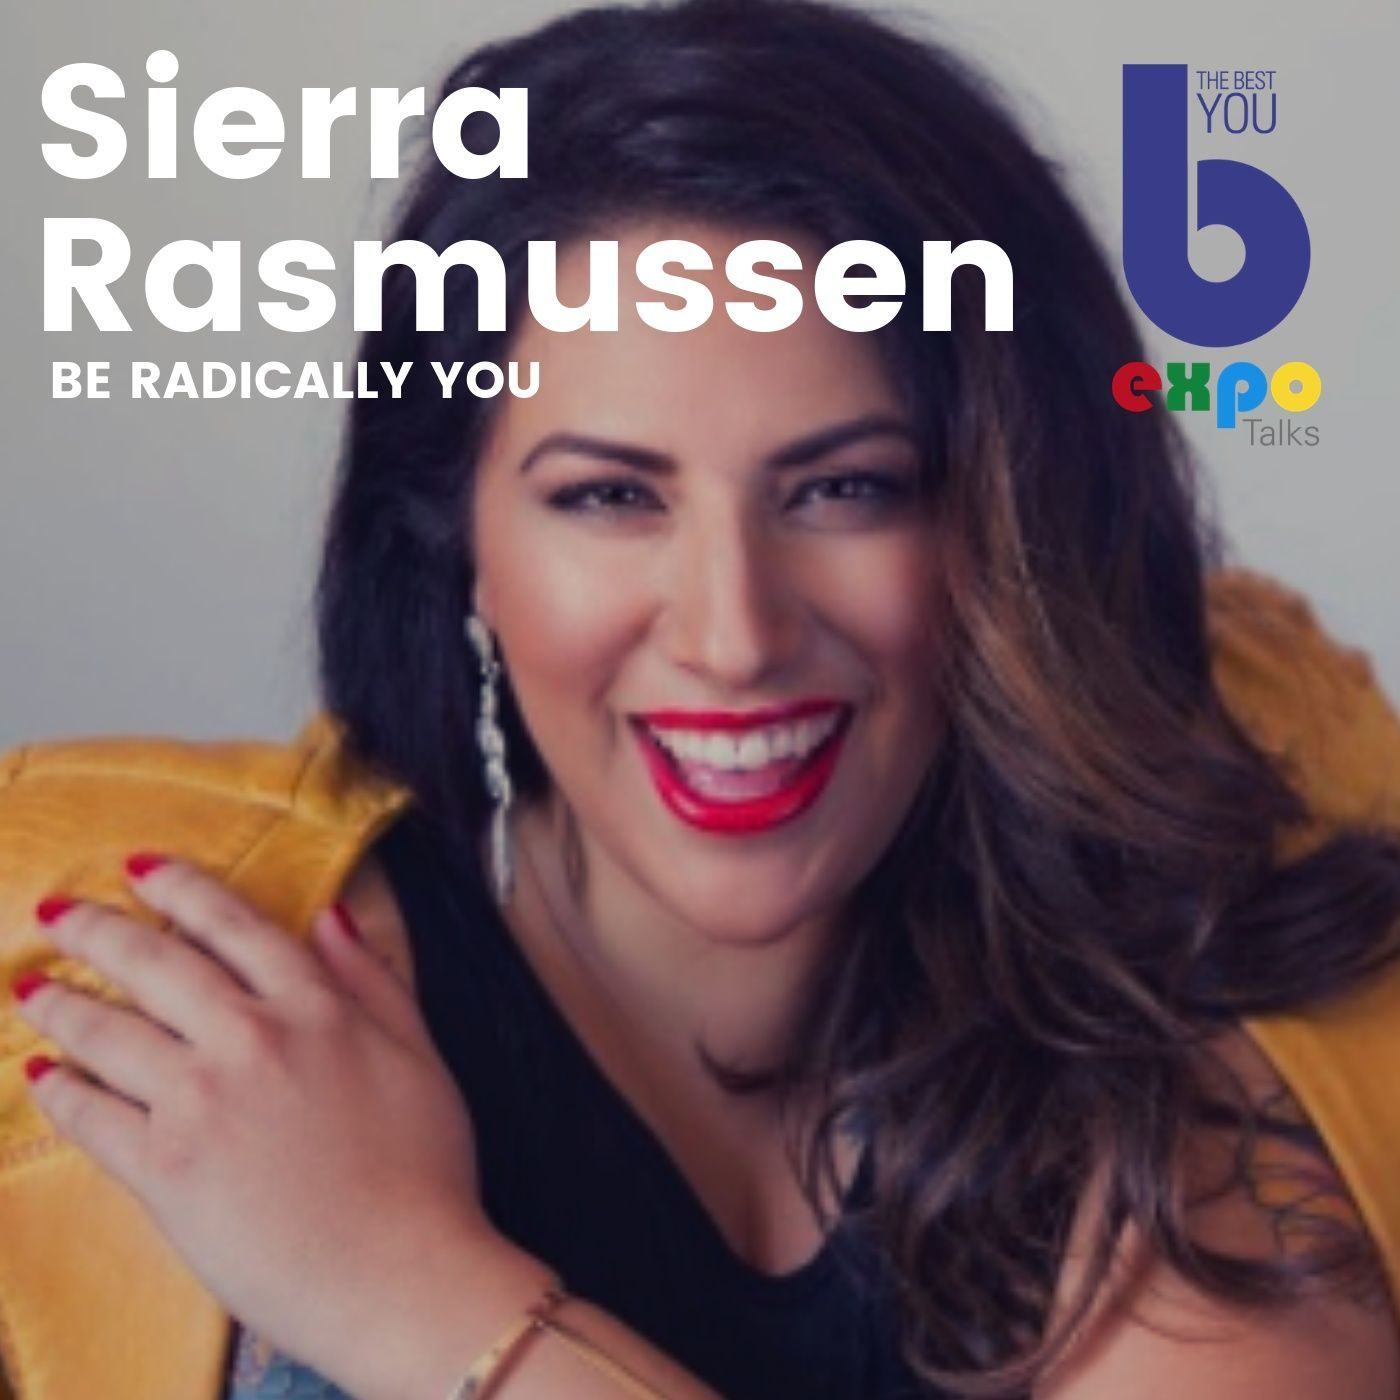 Listen to Sierra Rasmussen at The Best You EXPO